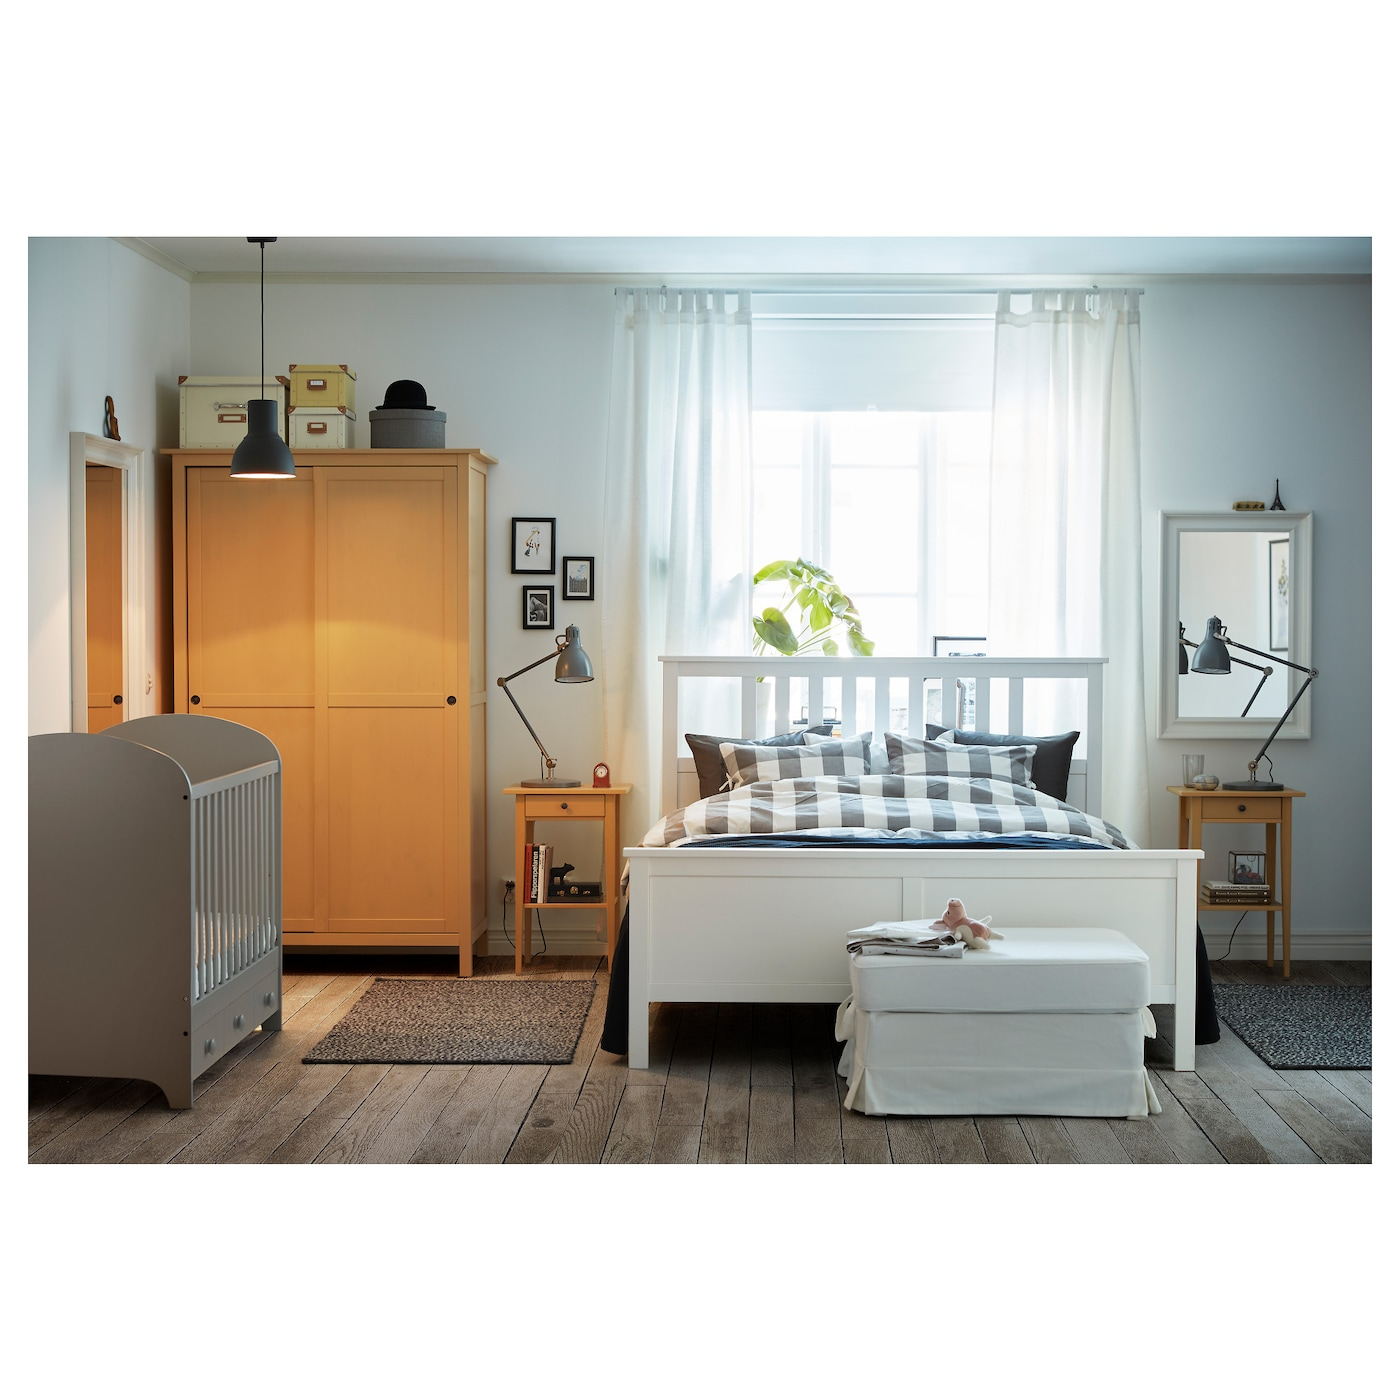 Hemnes bed frame white stain lur y standard double ikea for Table extensible ikea bjursta brun noir